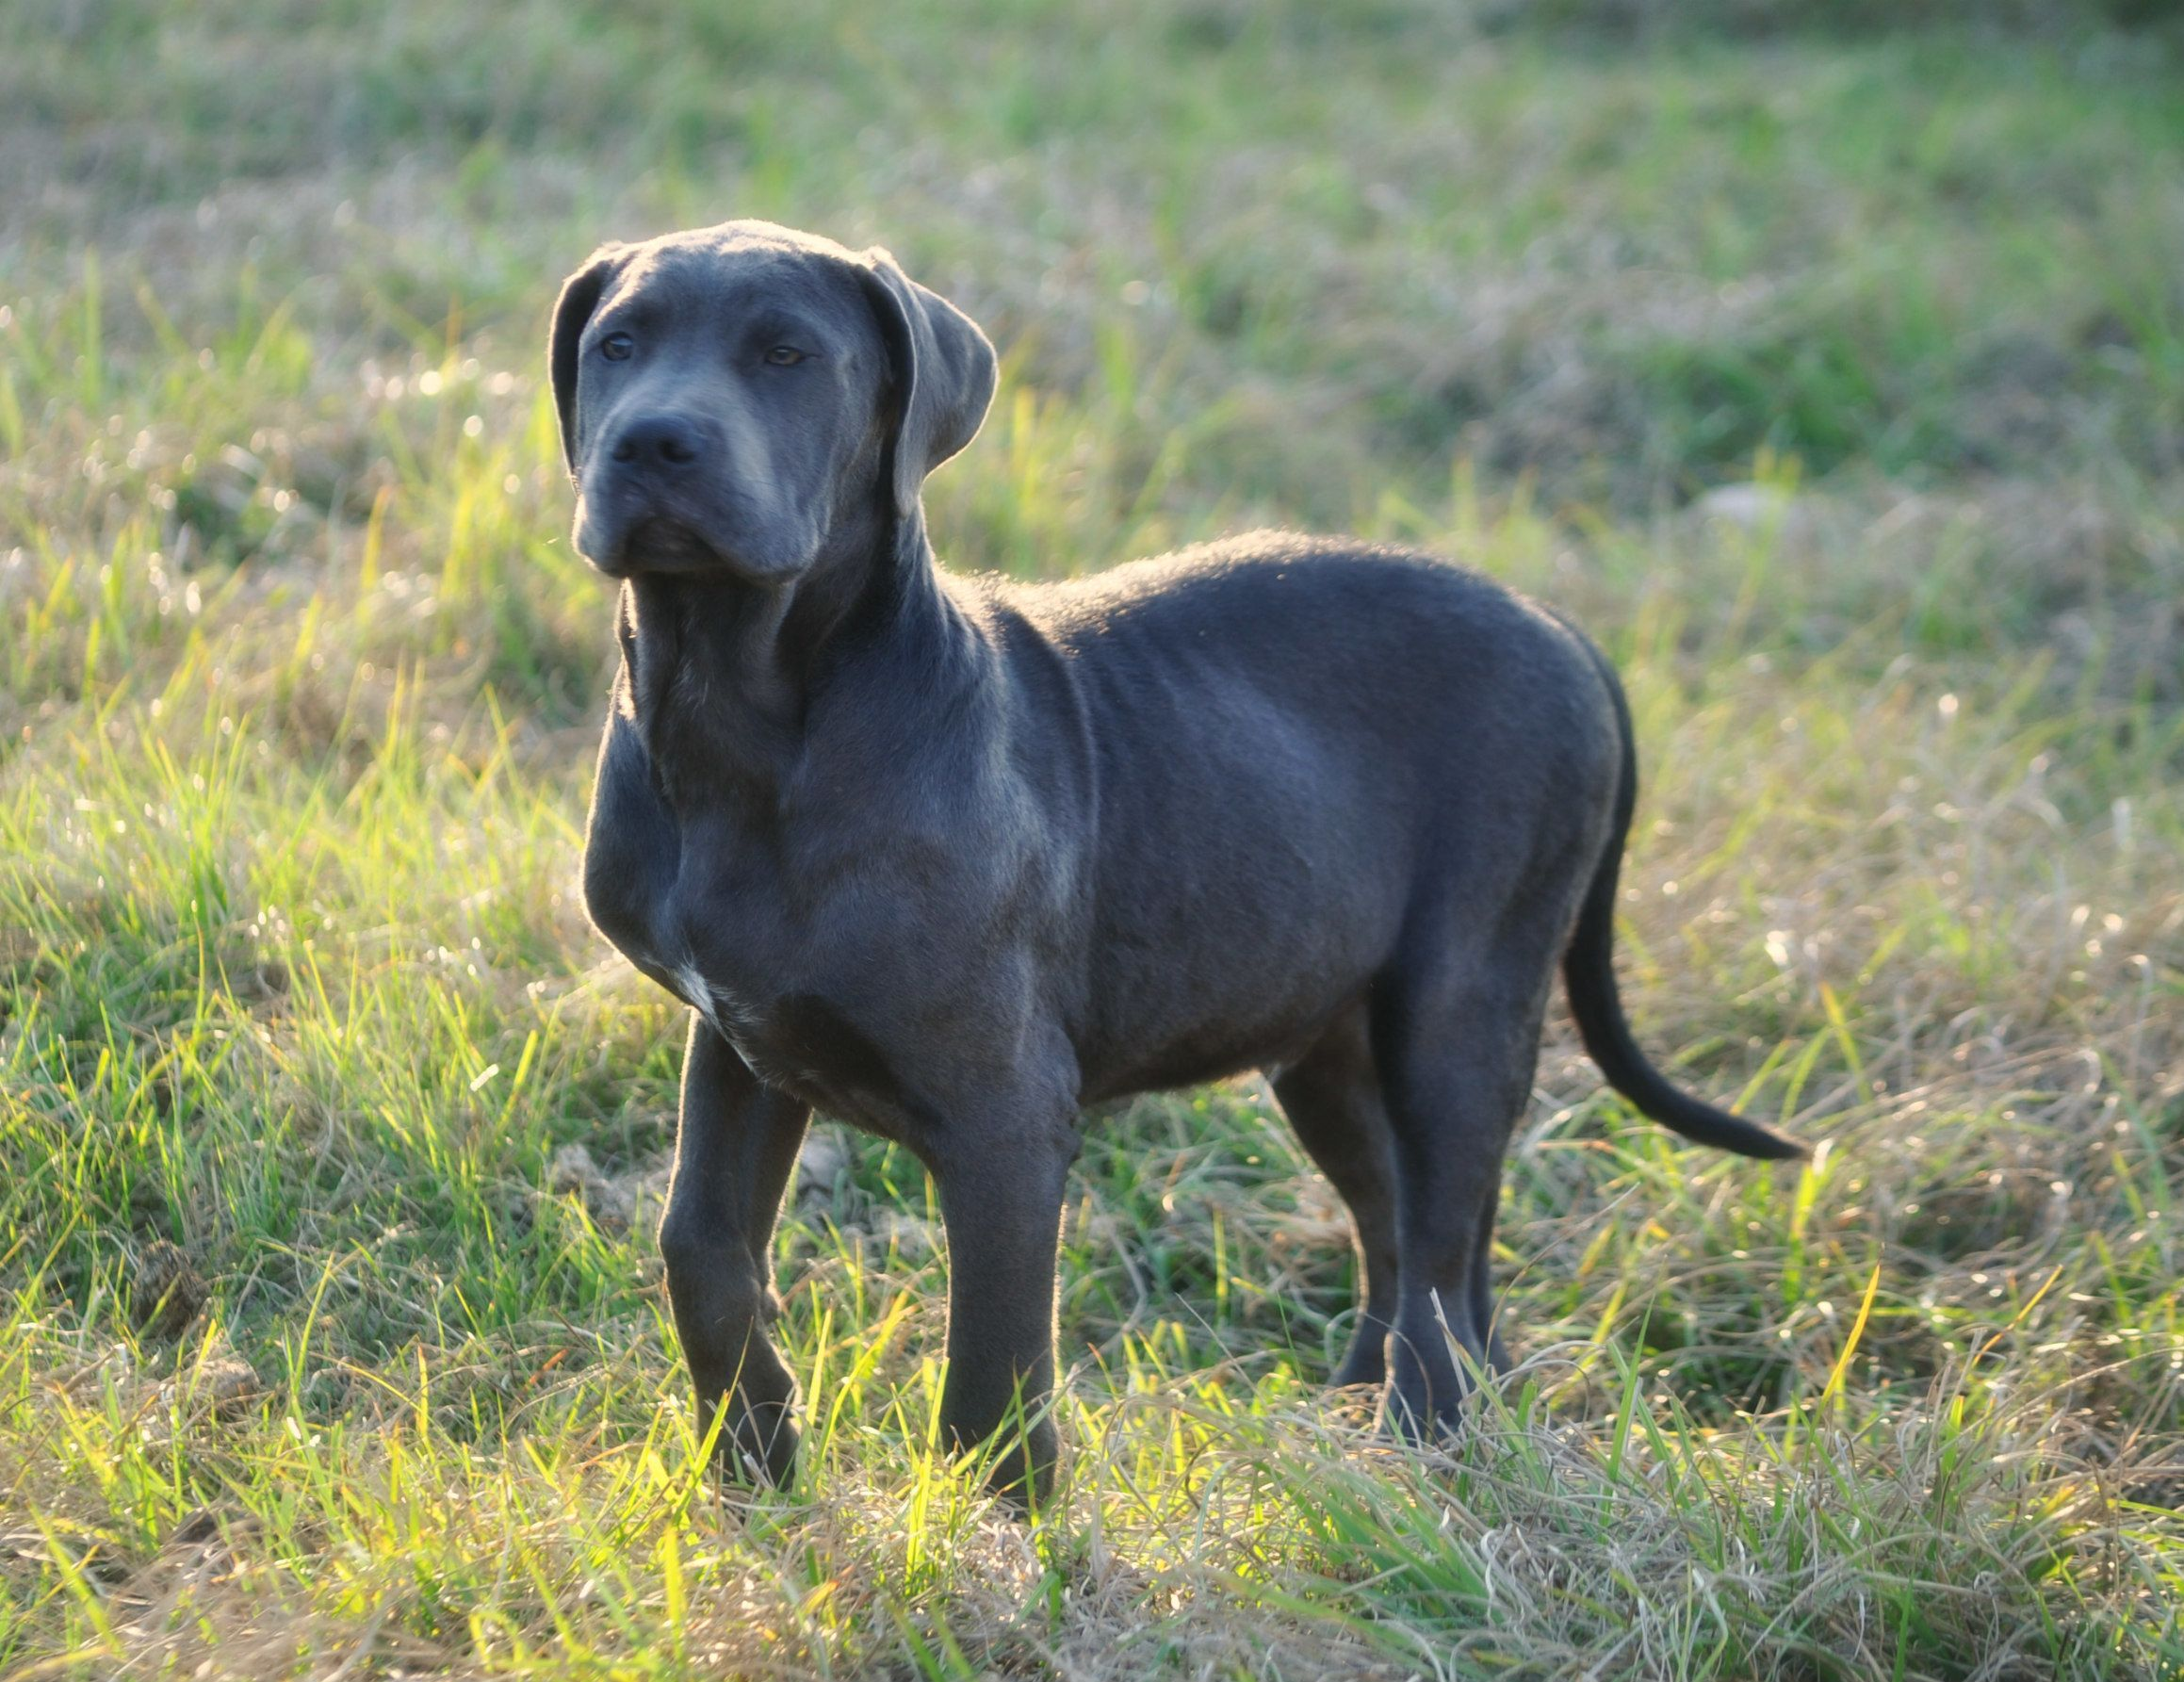 Kenya Is An Adoptable Cane Corso Mastiff Searching For A Forever Family Near Orlando Fl Use Petfinder To Find Adoptable Pets In Yo Funny Dogs Cane Corso Dogs